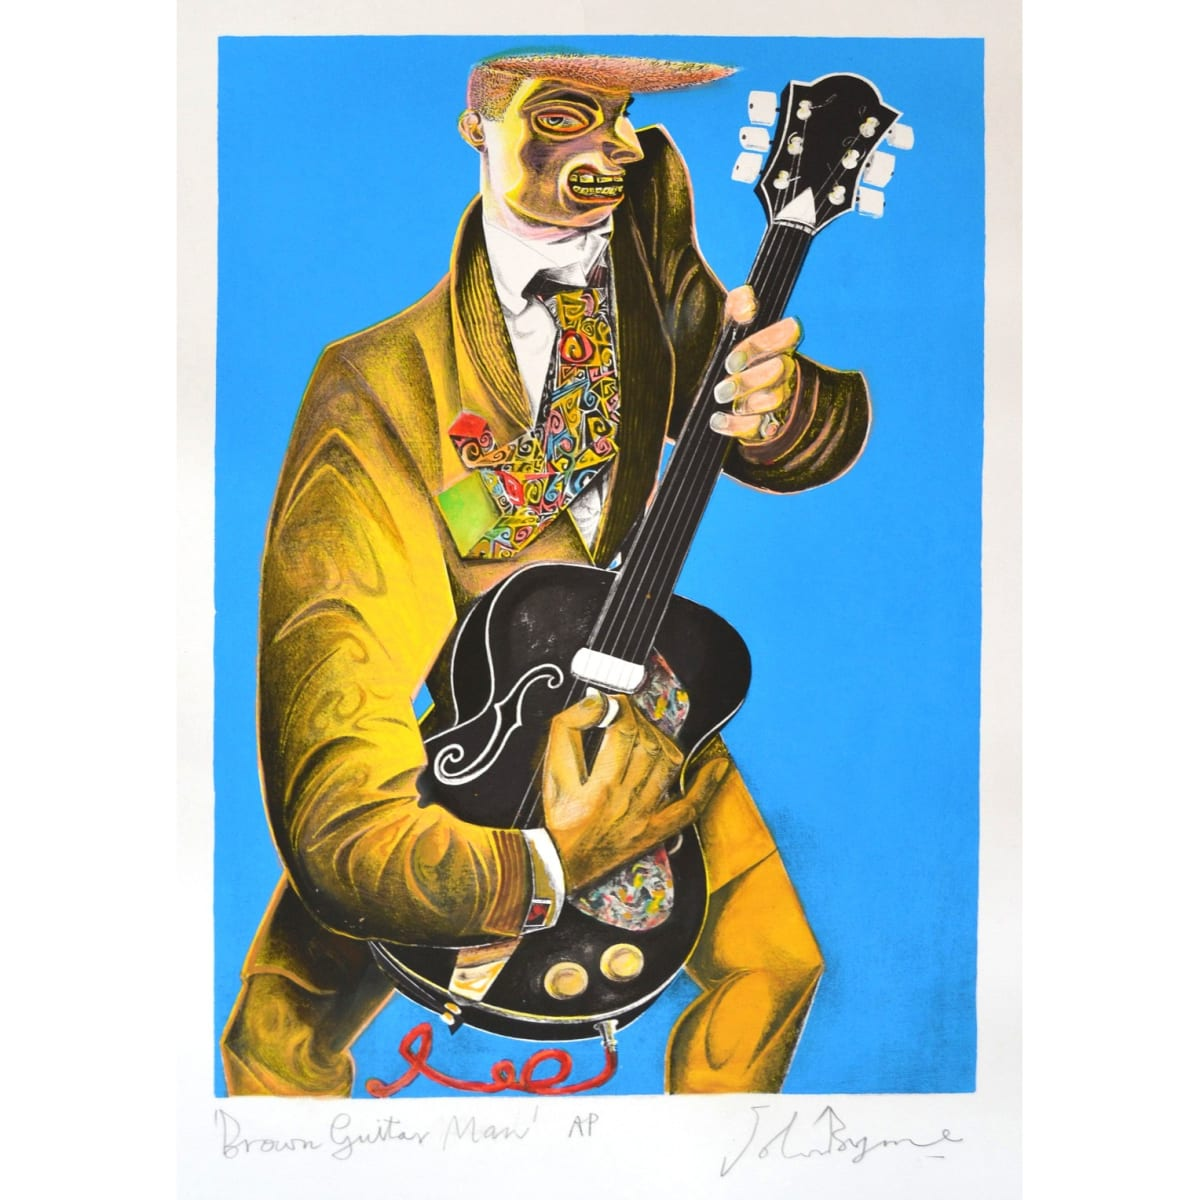 John Byrne Brown Guitar Man, 2019 signed, titled and inscribed A/P in pencil to margin hand coloured lithograph 26 3/4 x 18 3/4 inches